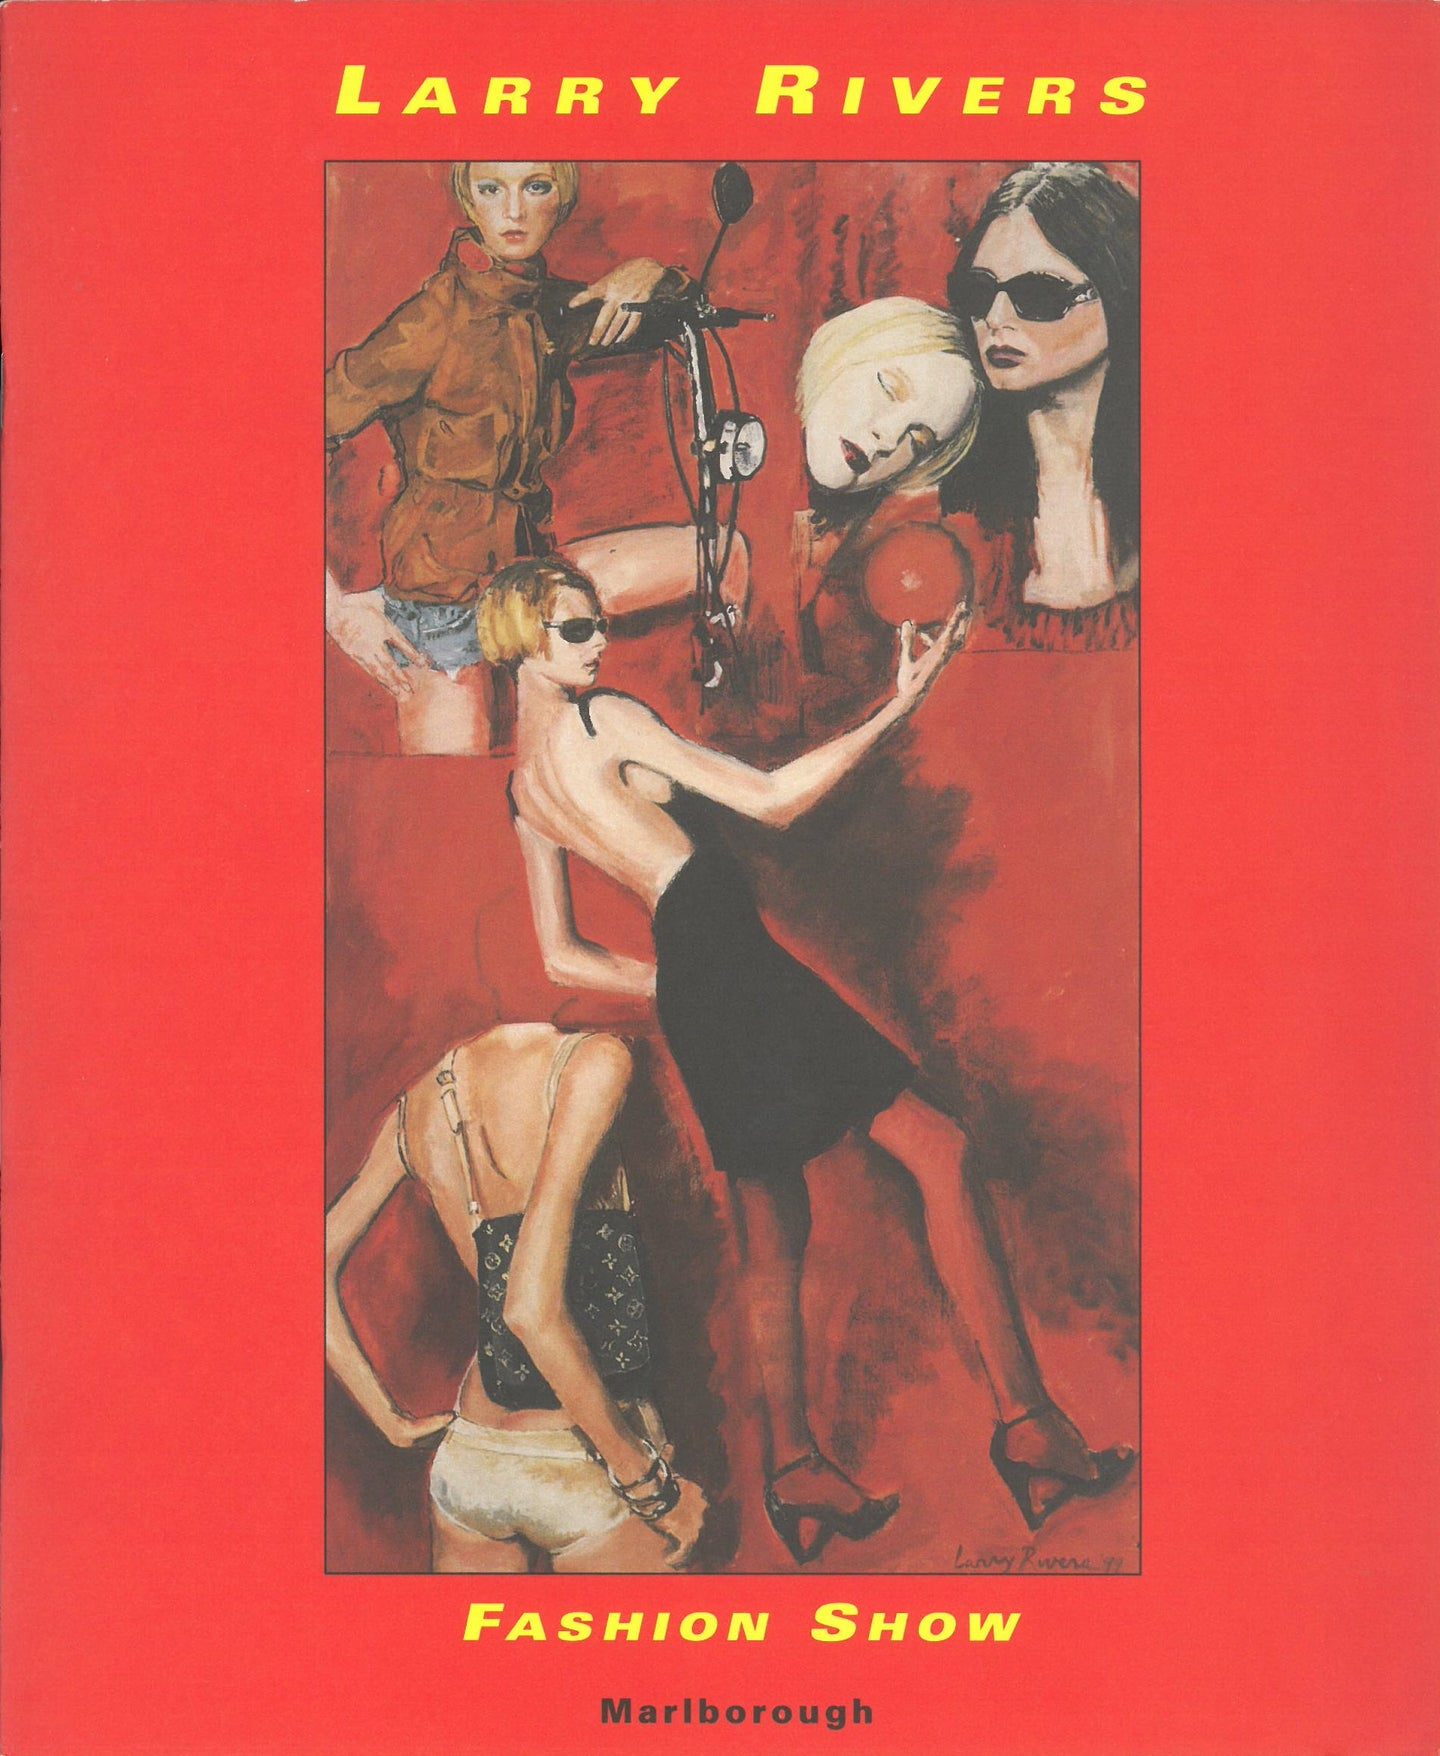 Rivers catalogue cover featuring a painting of several models on a red background